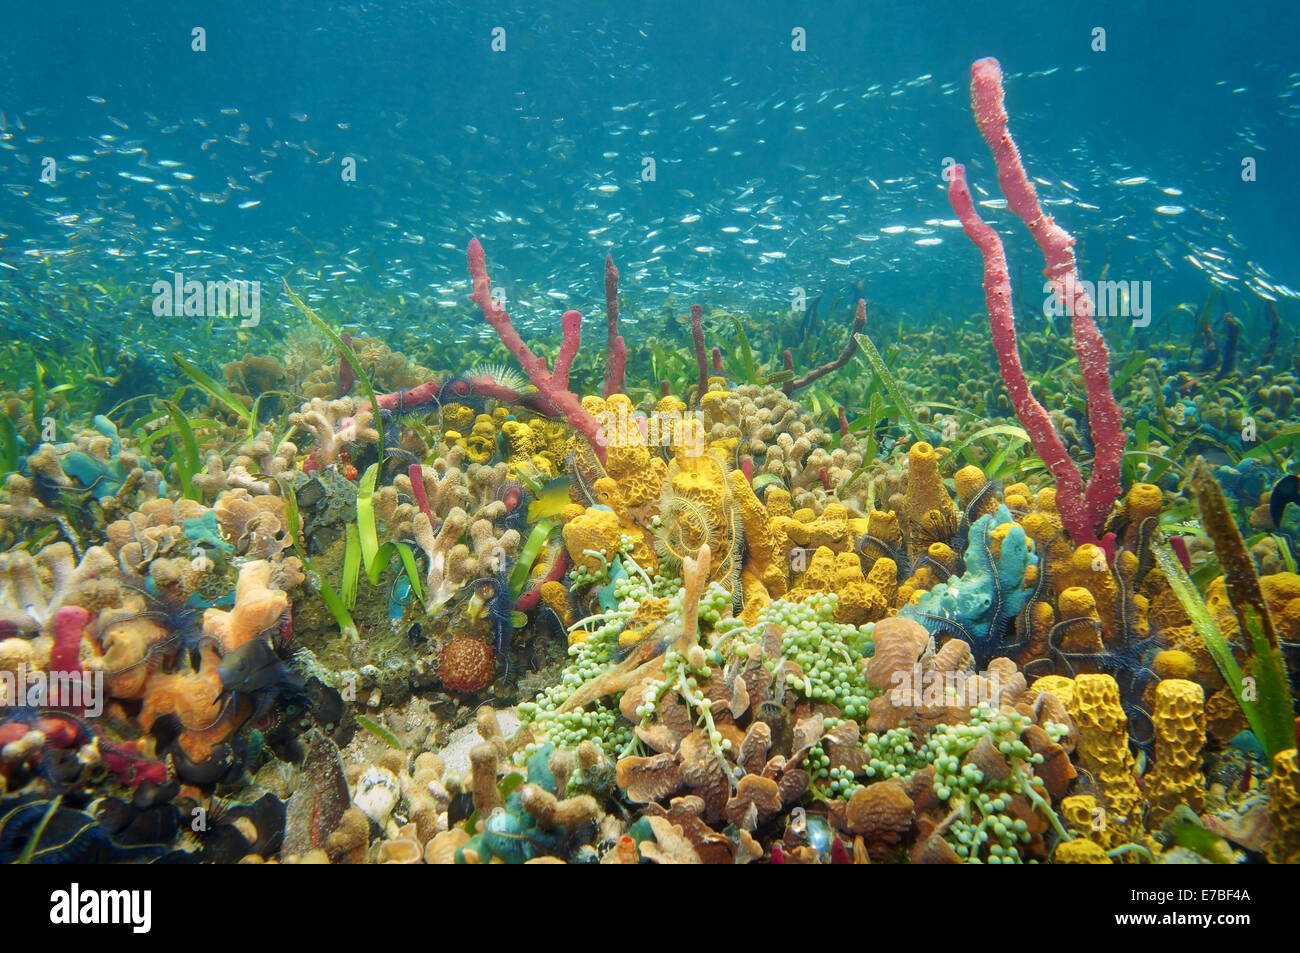 thriving and colorful underwater life with sea sponges, corals and shoal of small fish, Caribbean sea, Colombia - Stock Image